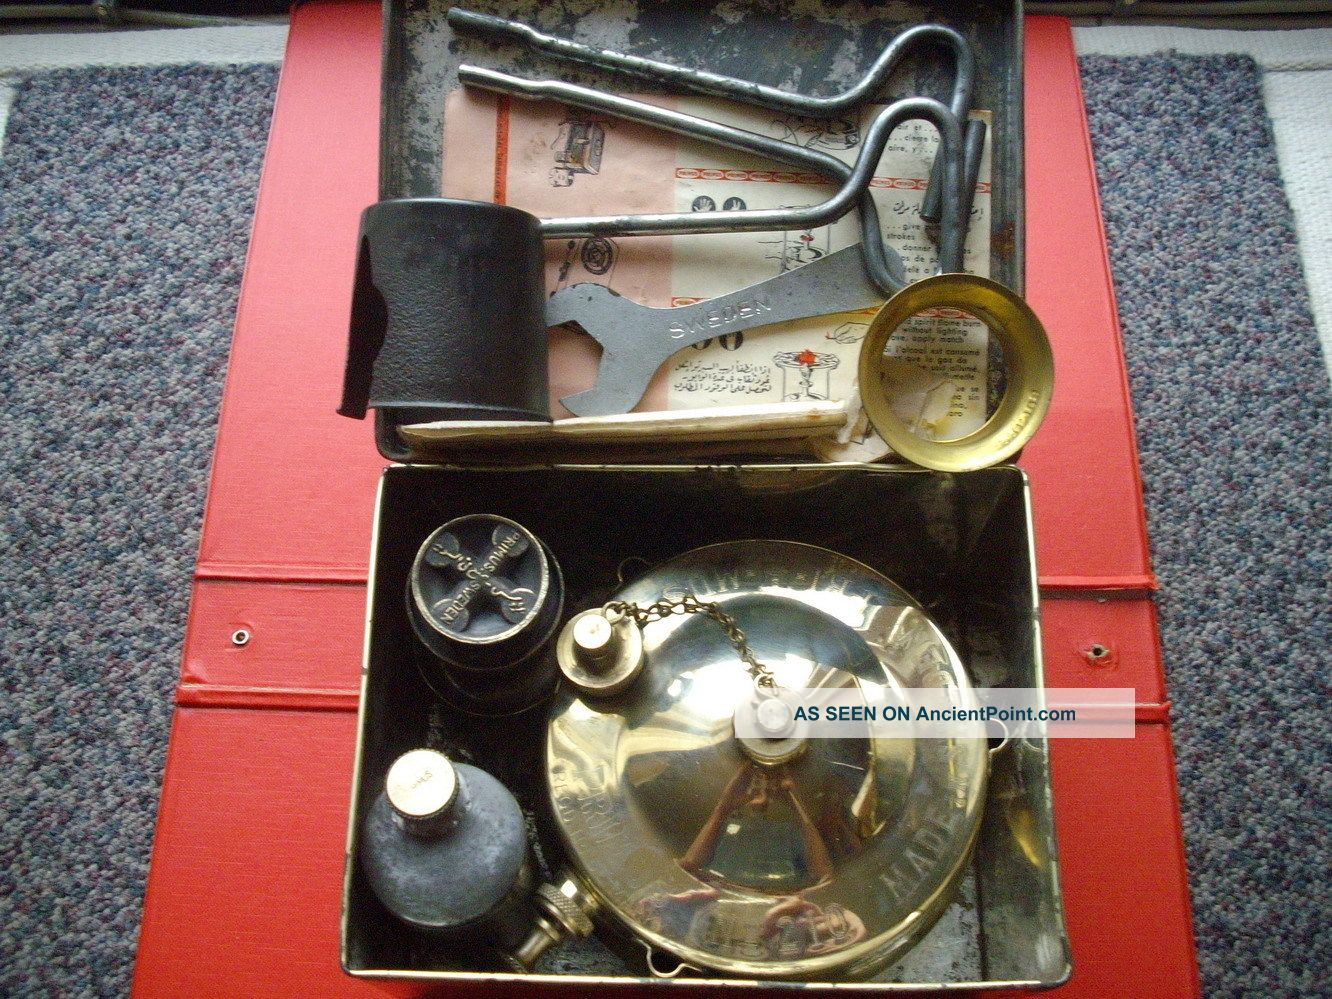 Primus 210 Paraffin Kerosene Stove Backpacking Camping Working Other photo